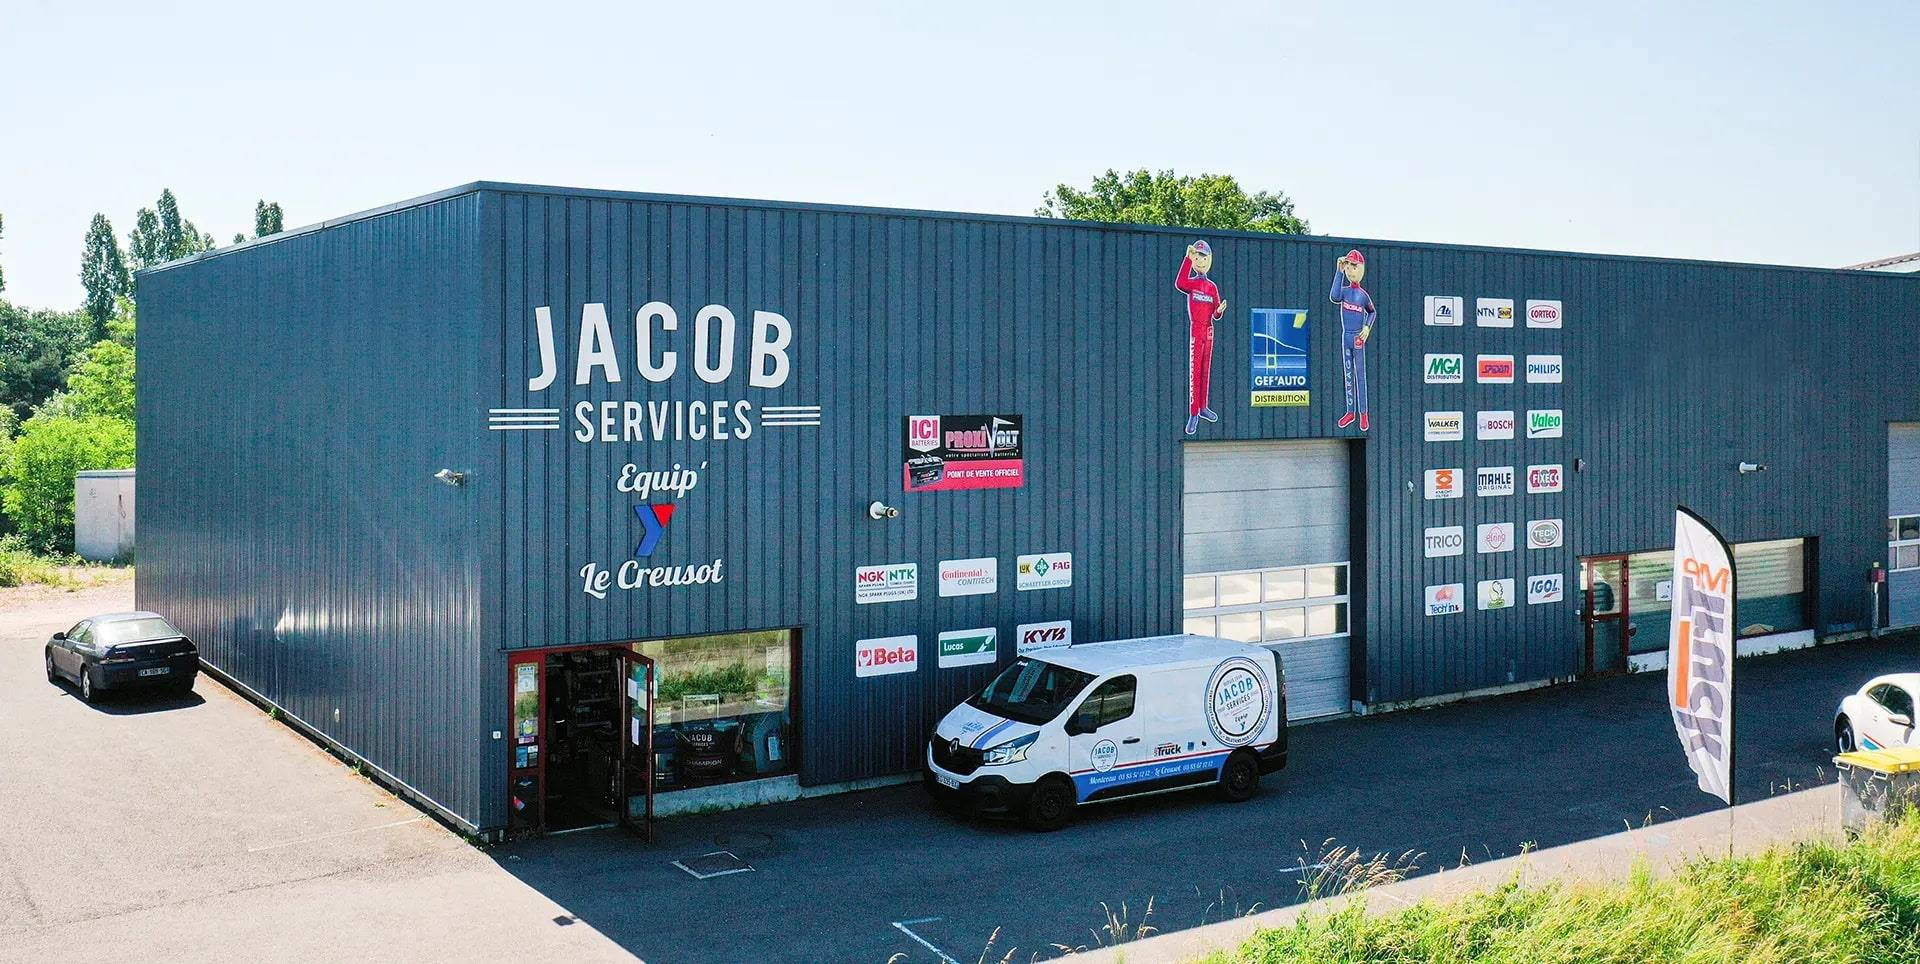 Photo Jacob Services Le Creusot - Gefauto